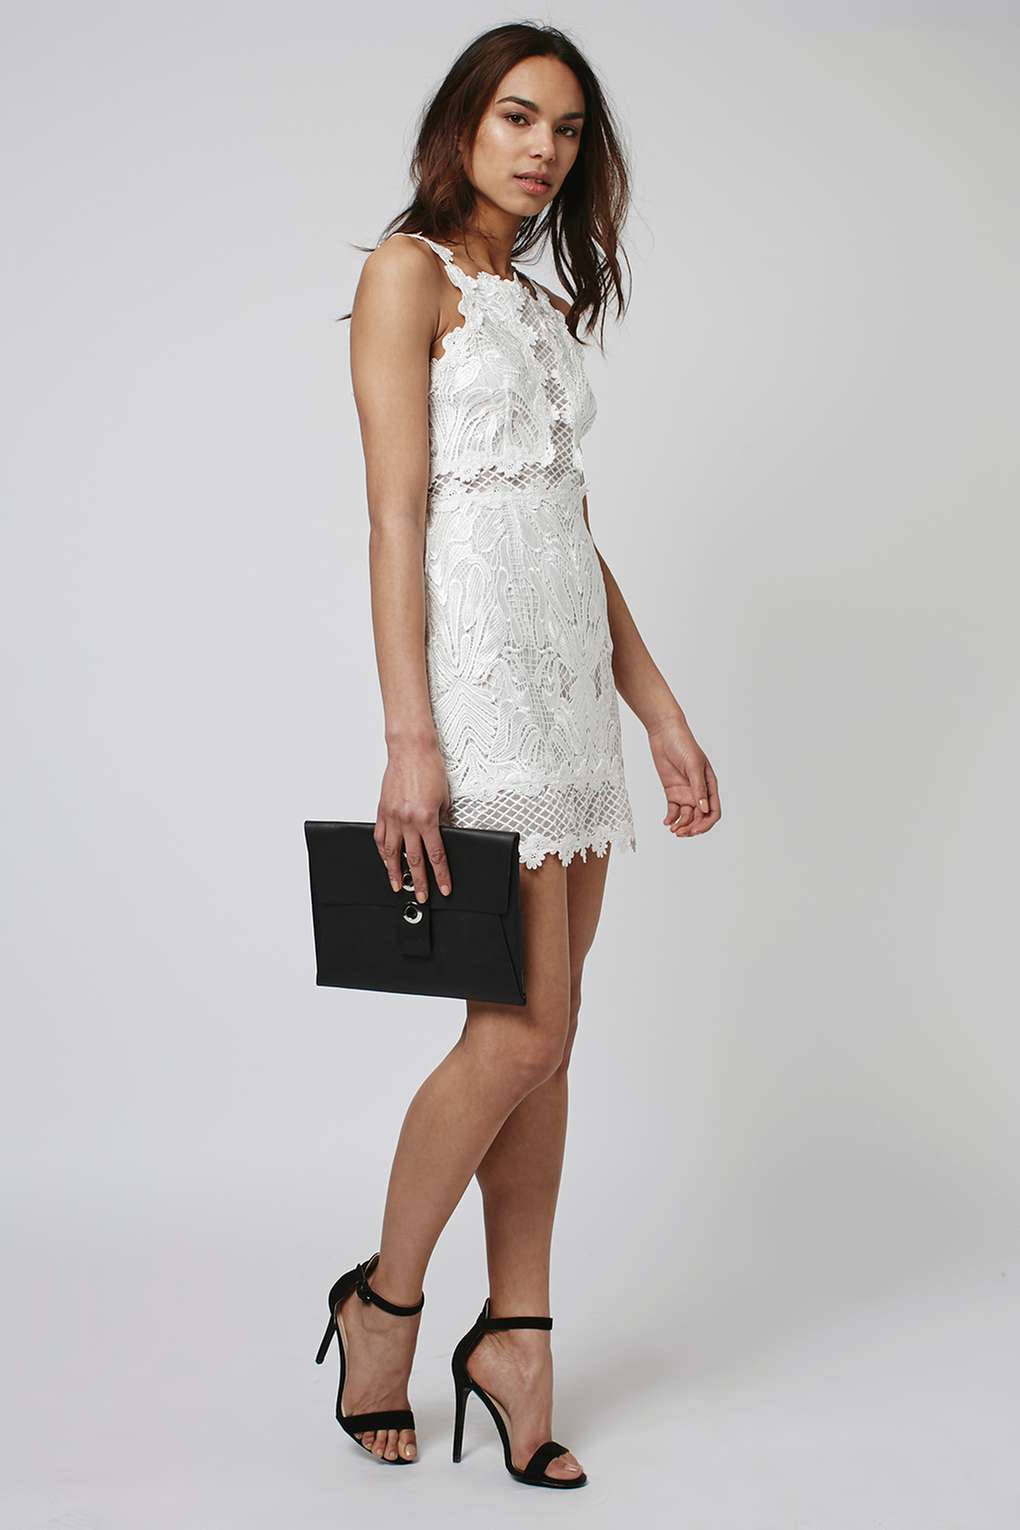 Topshop Petite Lace Detailed Bodycon Dress in White | Lyst